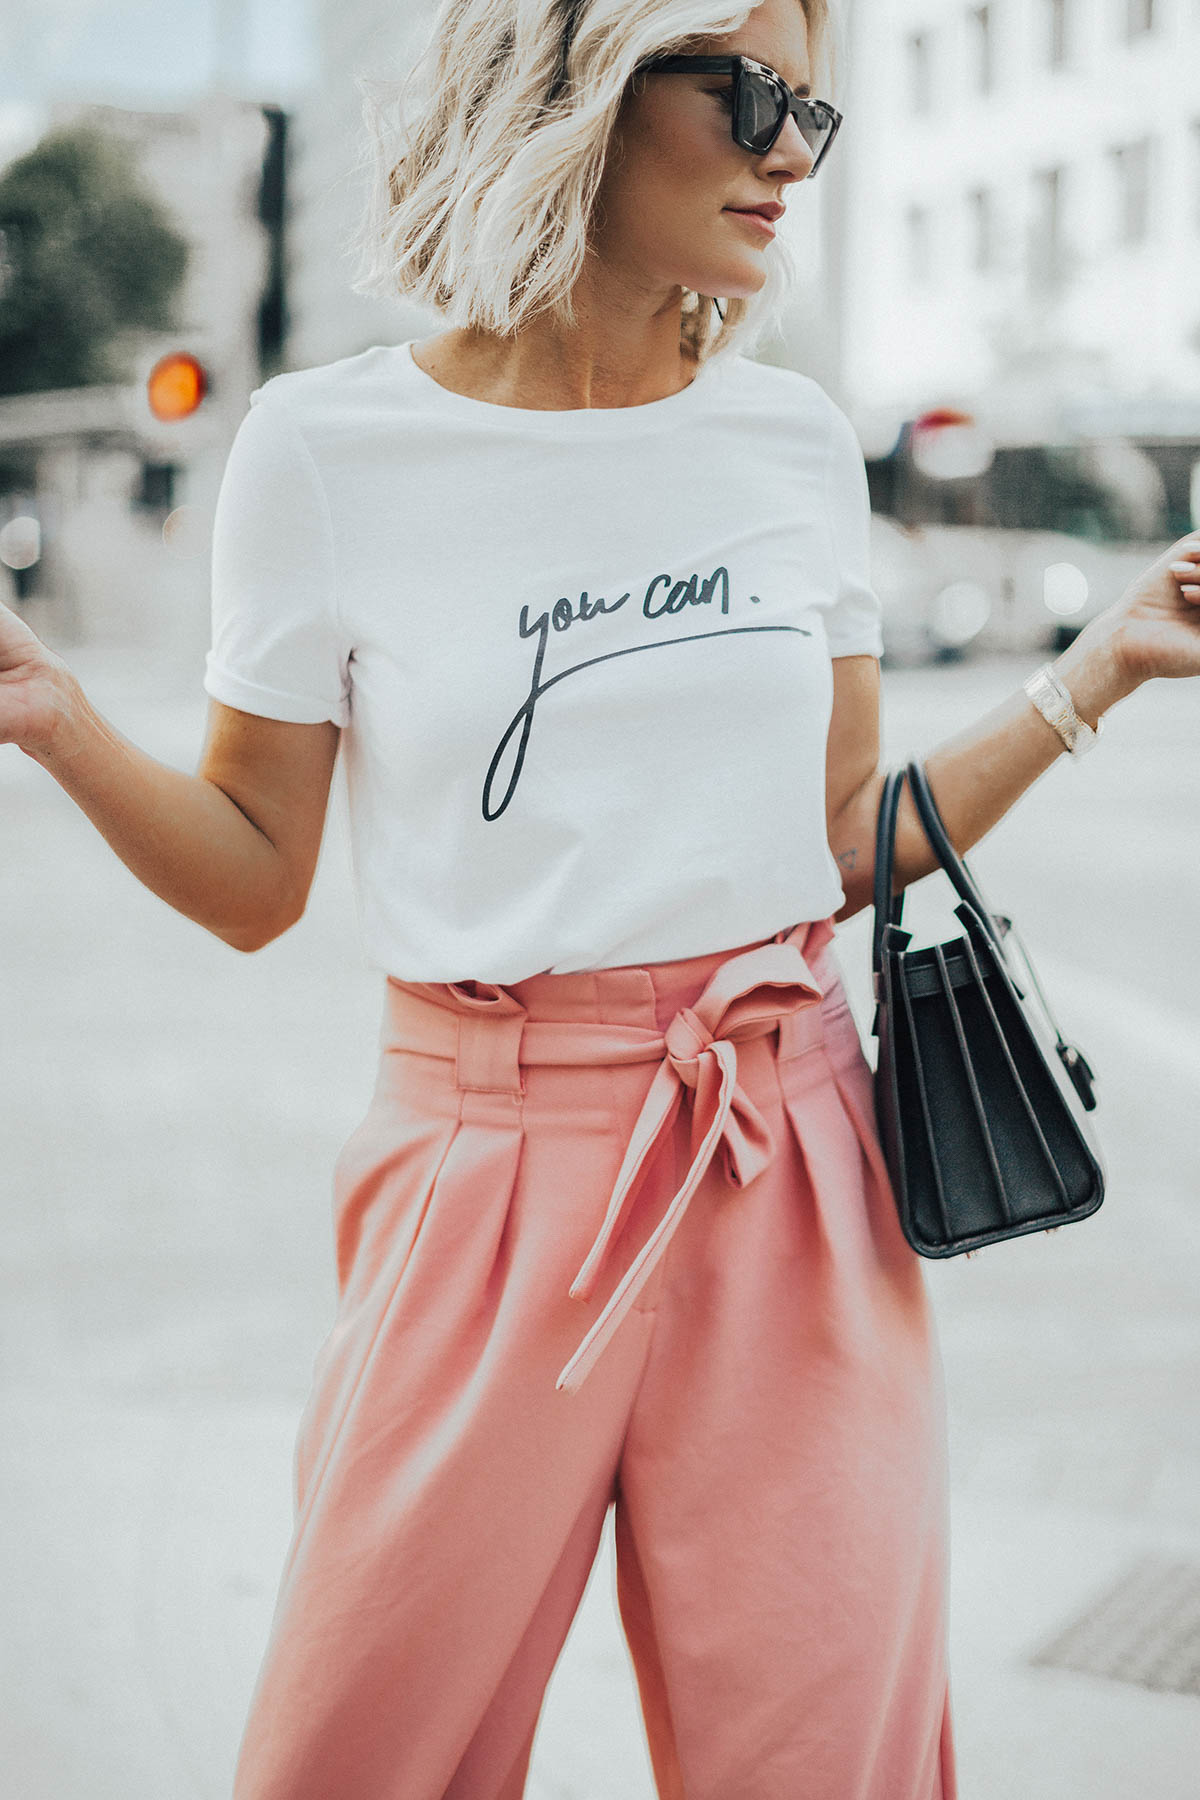 Sage Coralli wearing cute pink pants for Summer